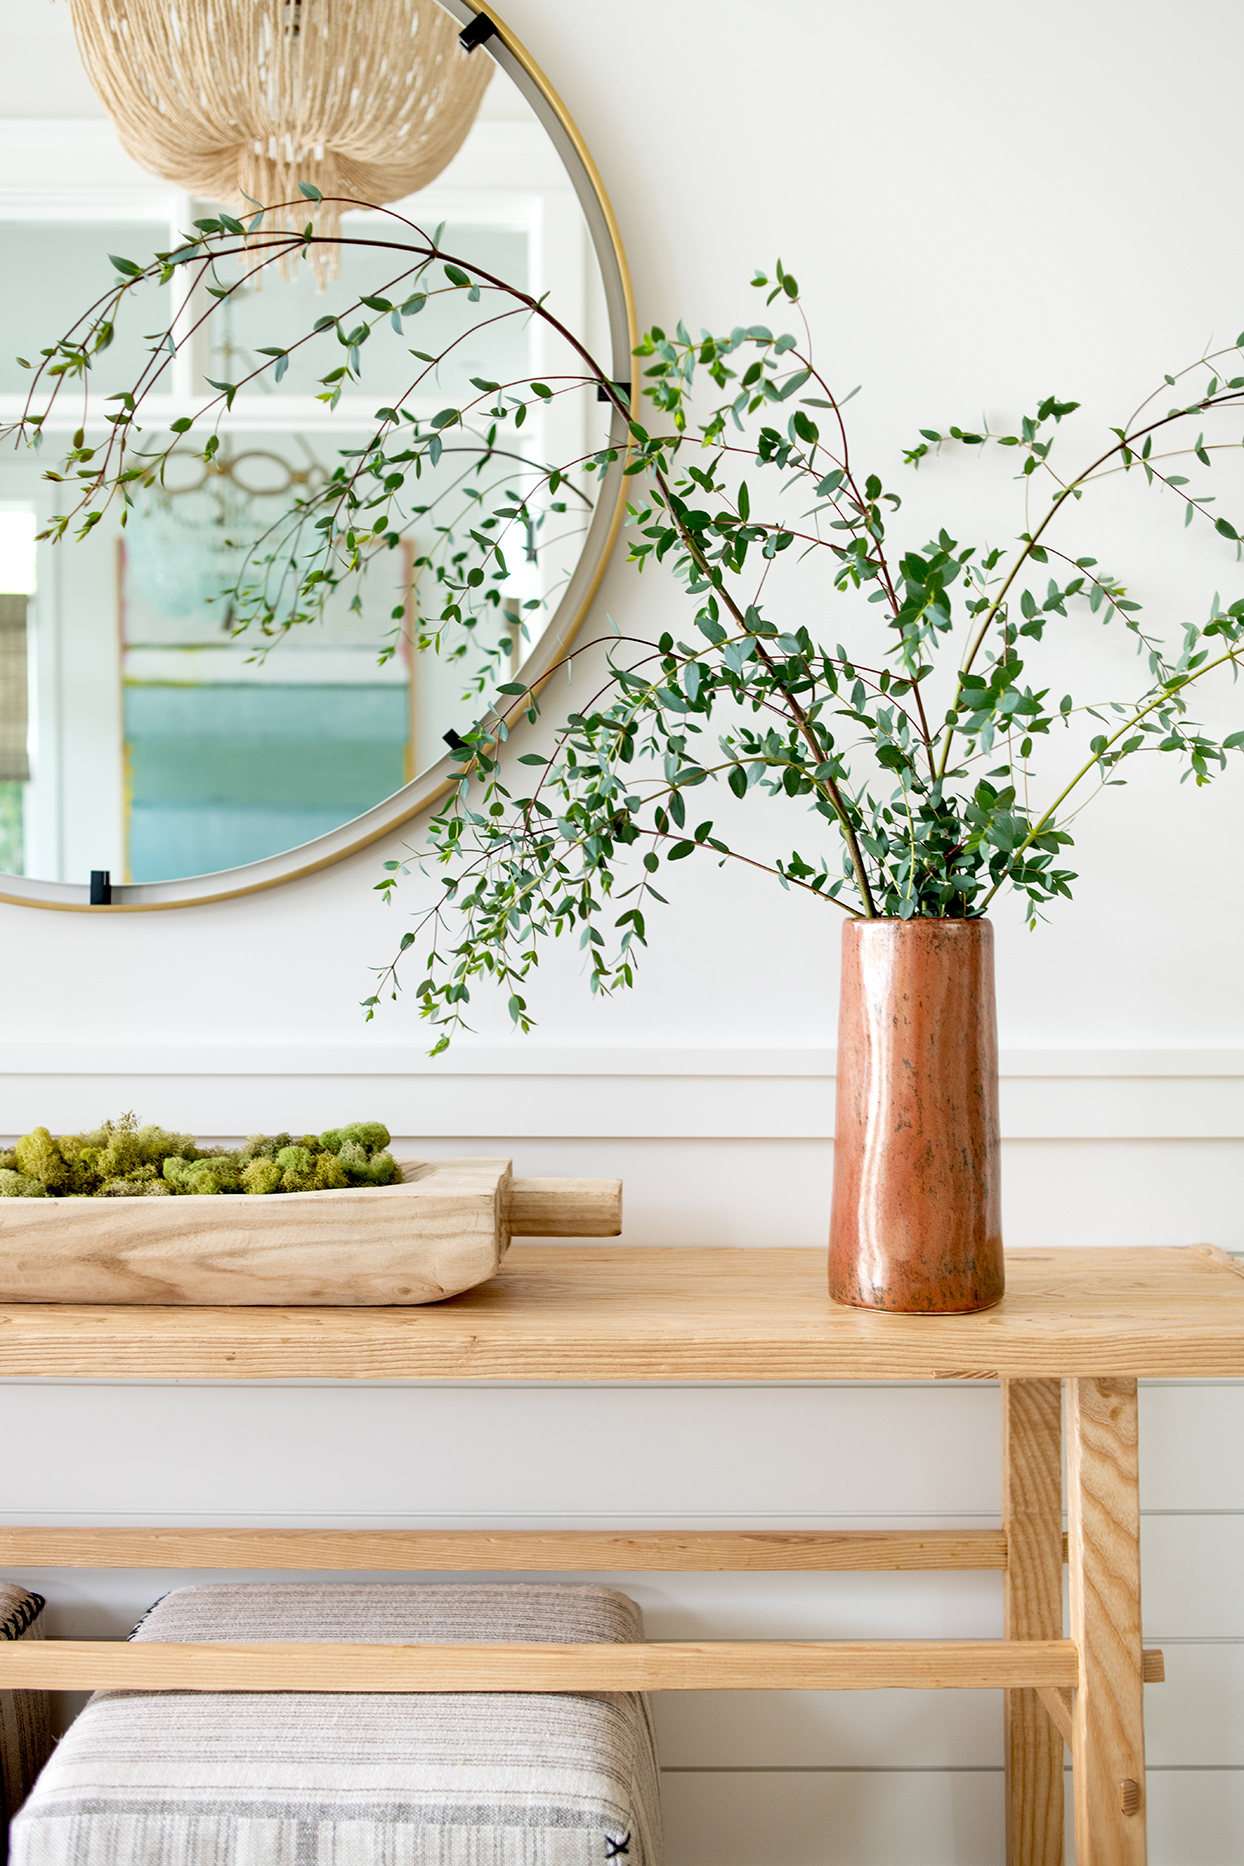 circular mirror with green plant in vase on table